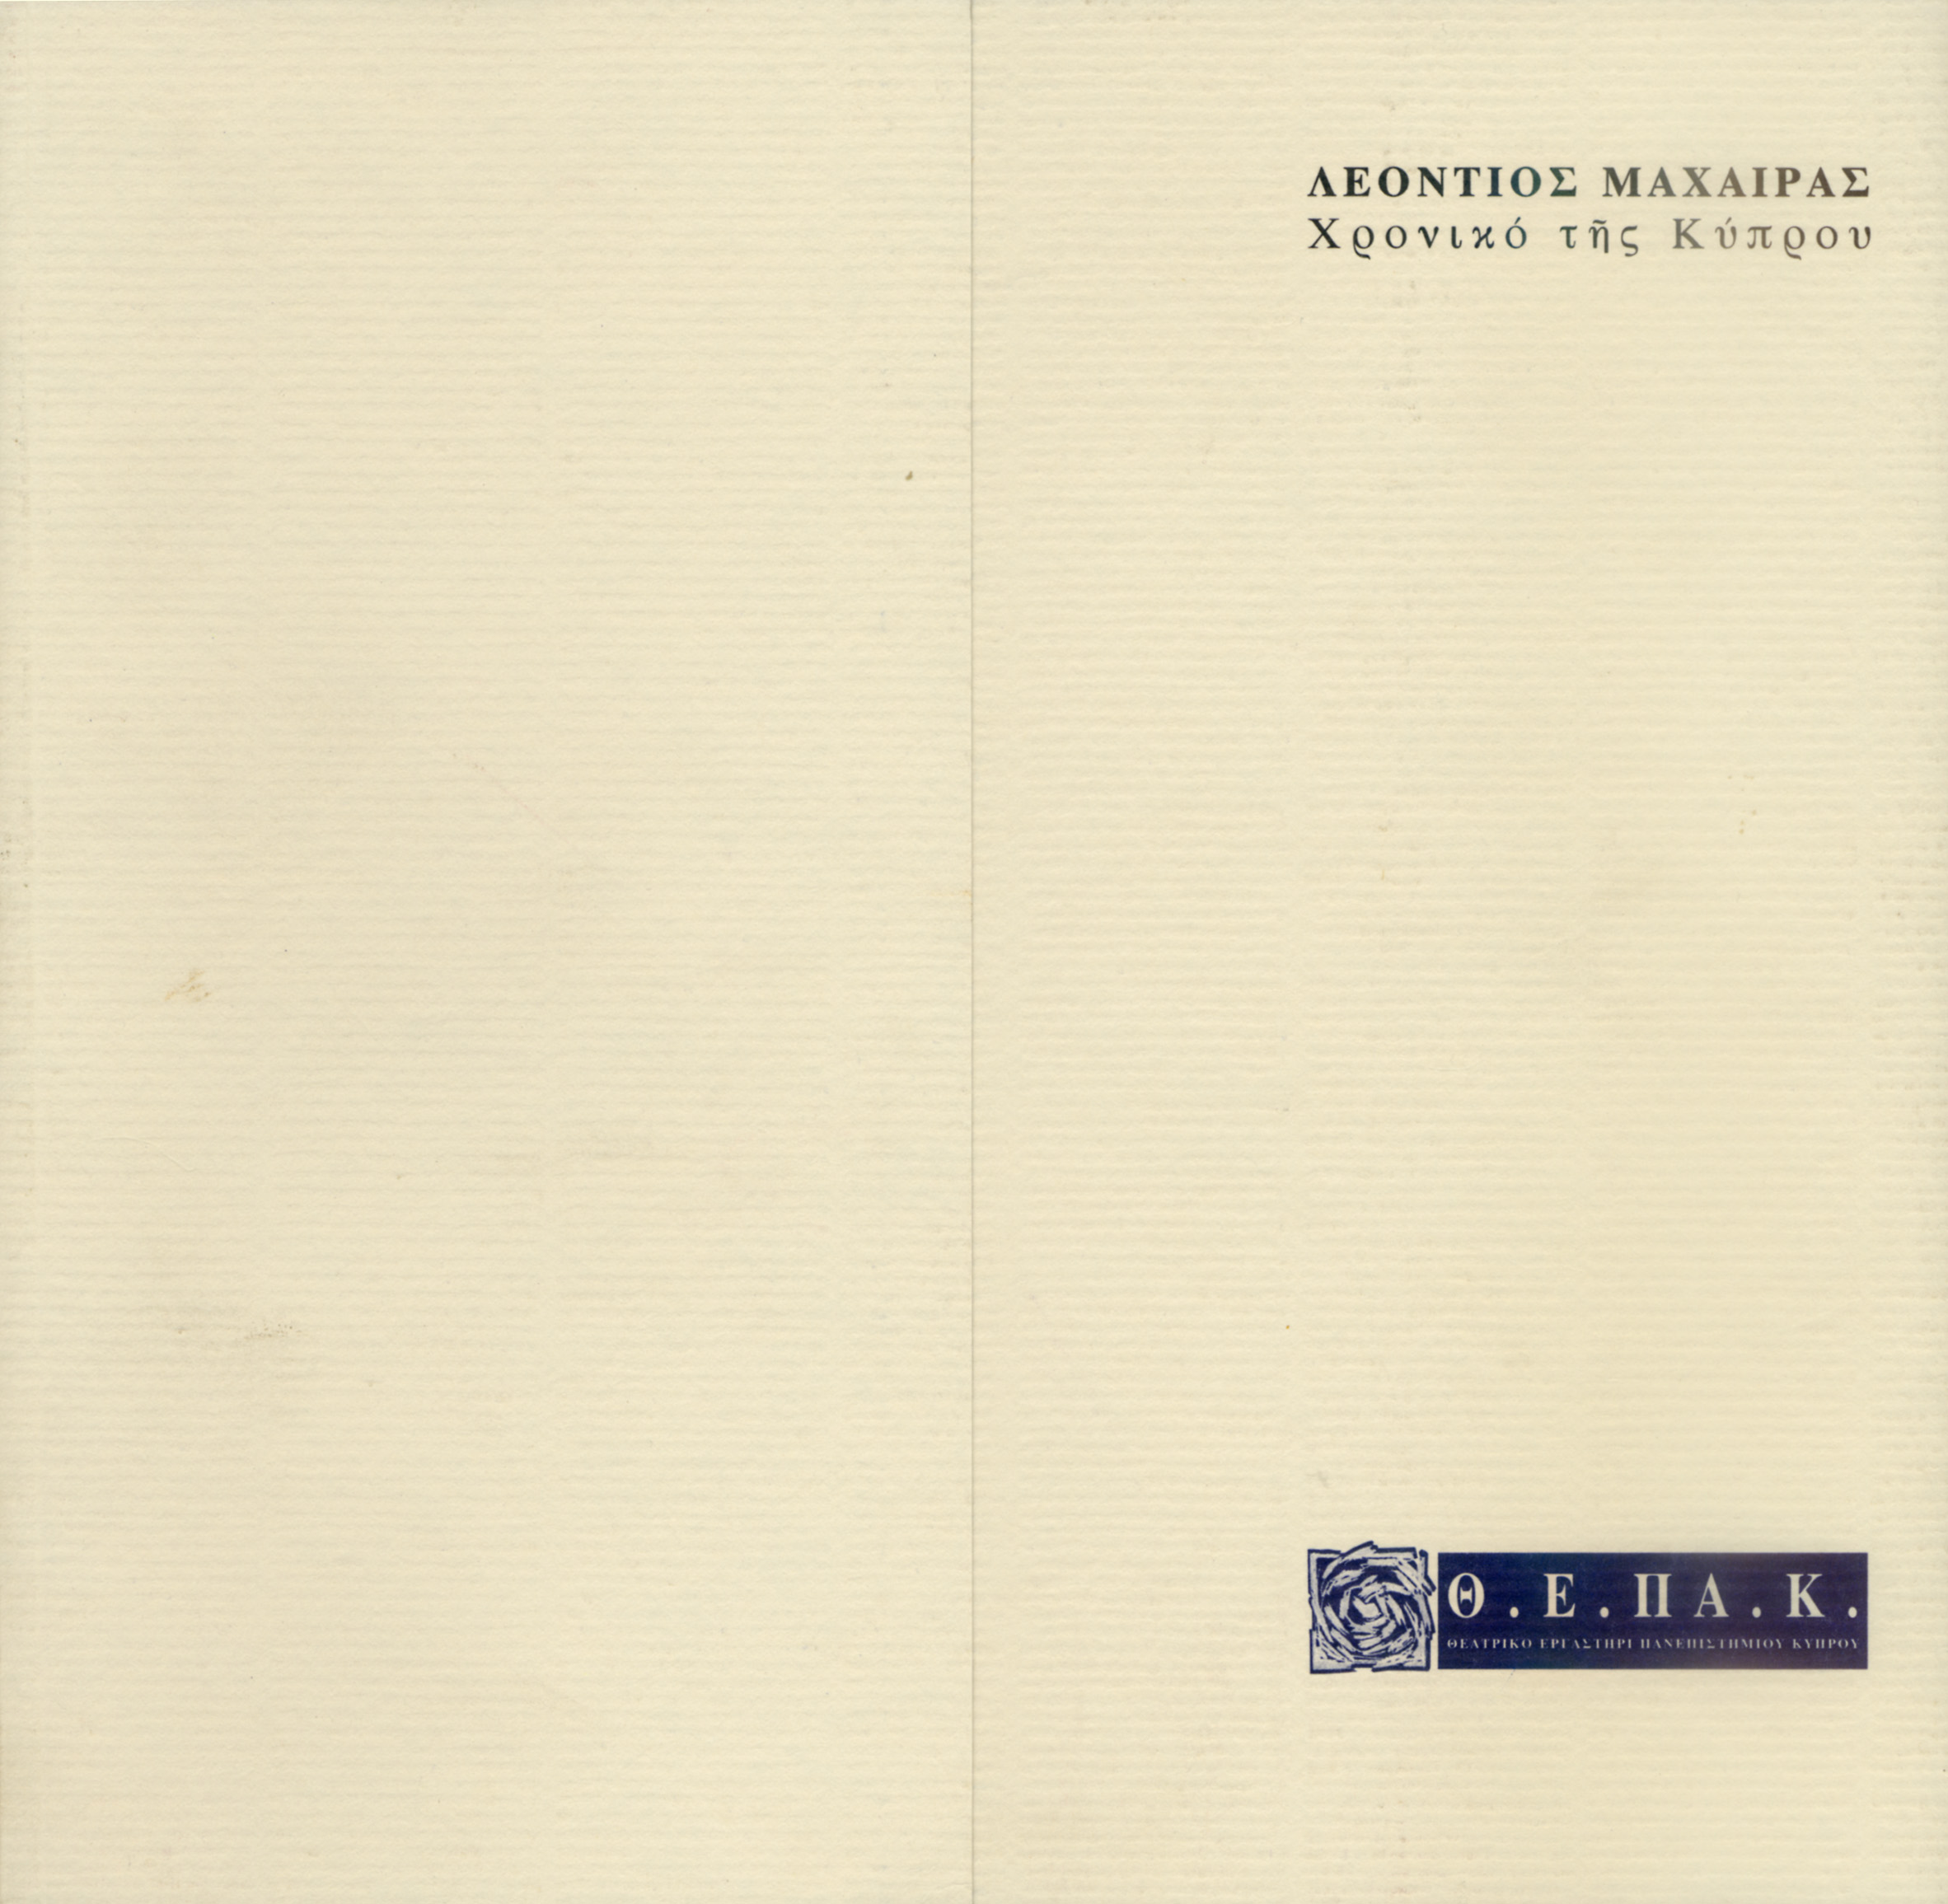 Xroniko-Booklet-Cover